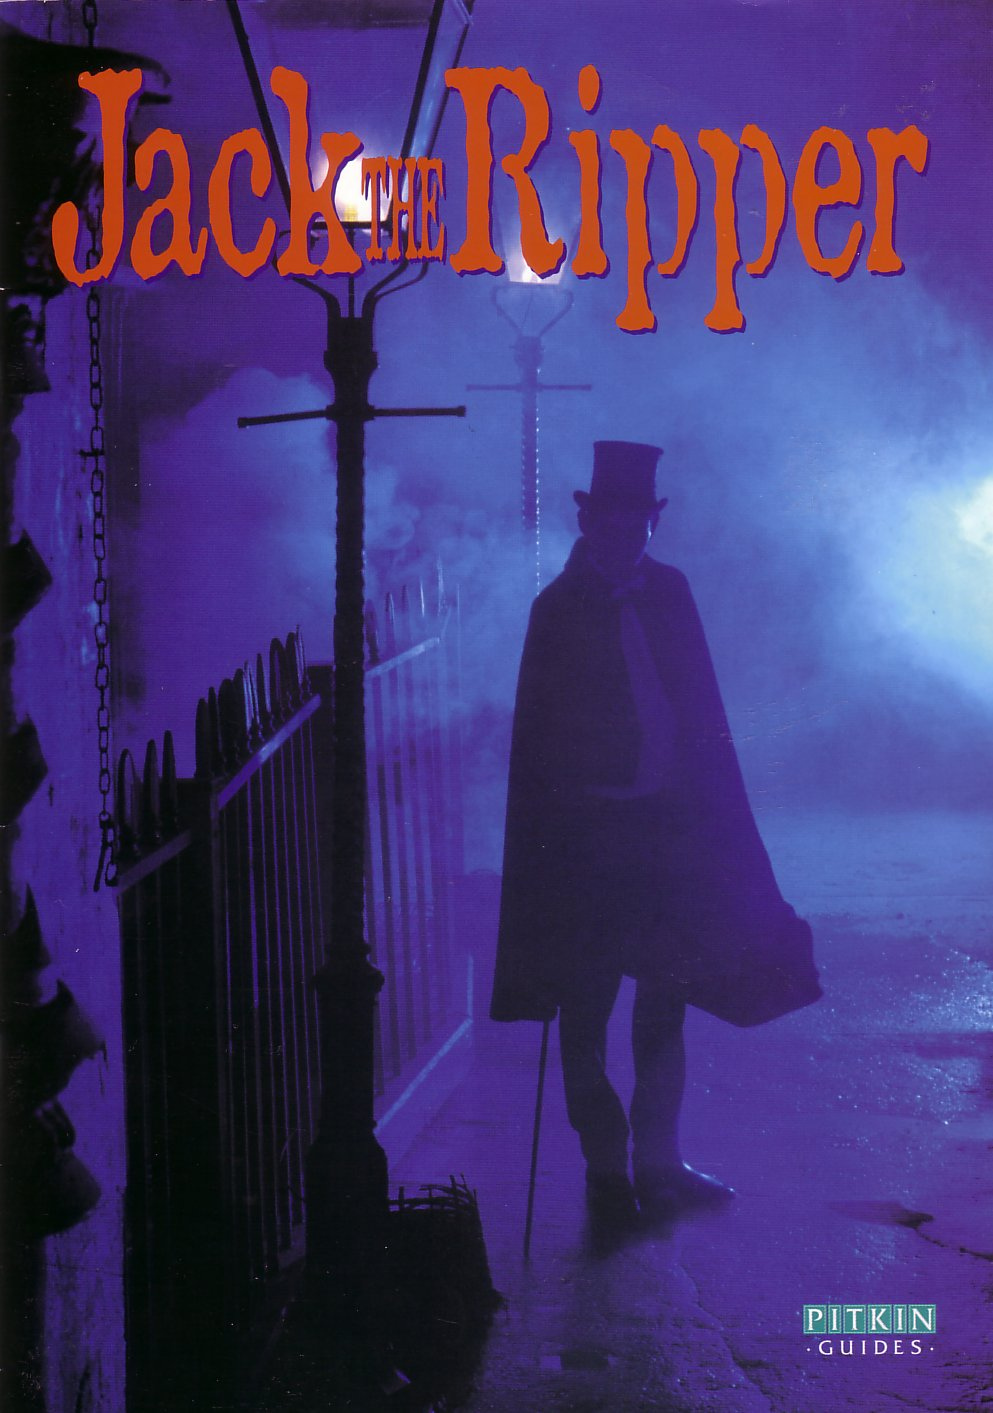 Jack the ripper essay outline